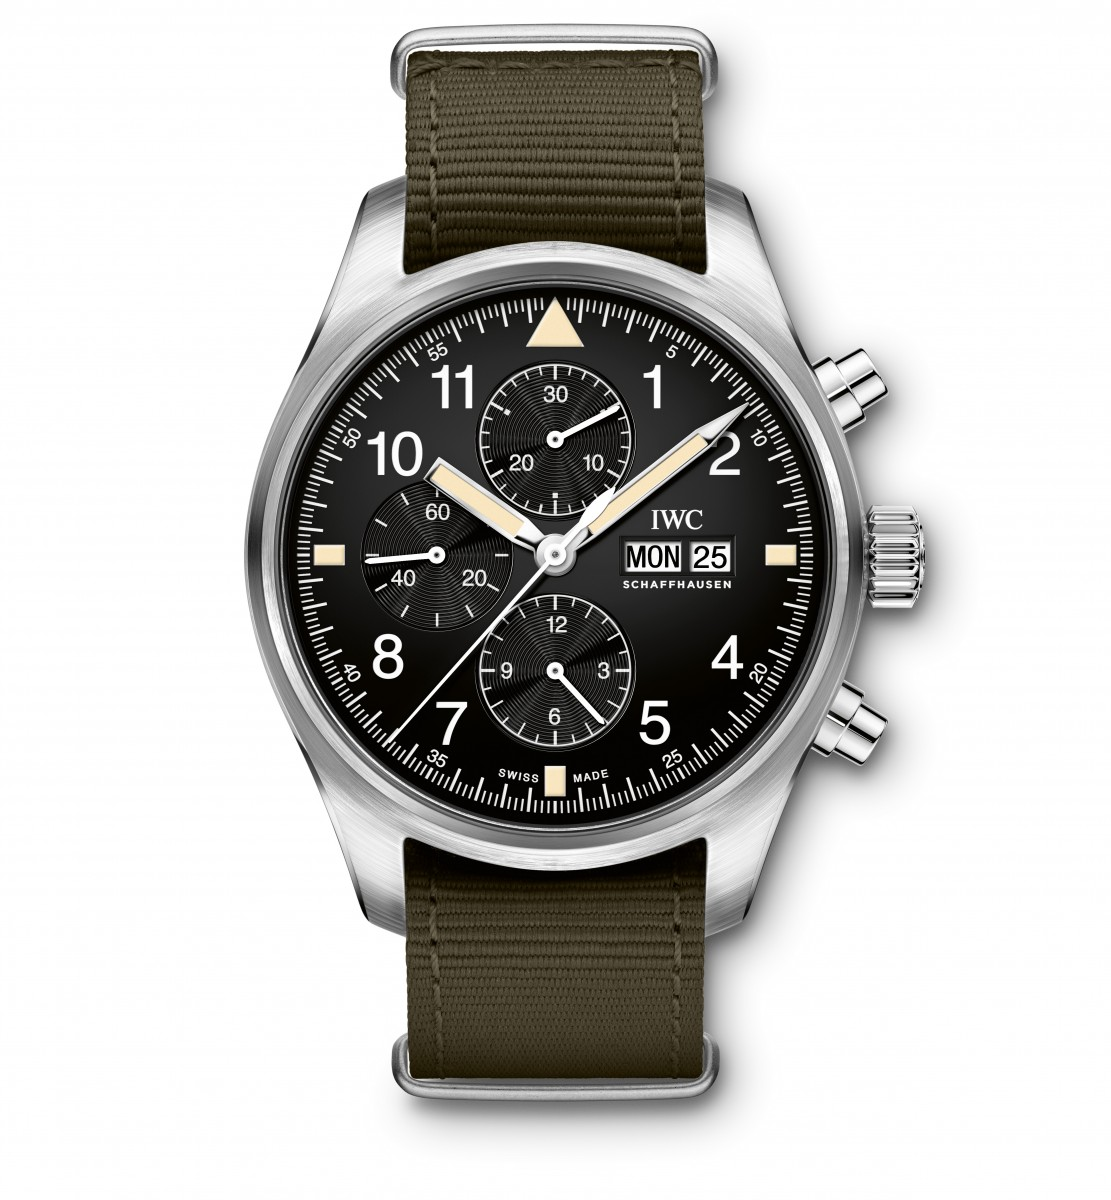 IWC_377724_Front